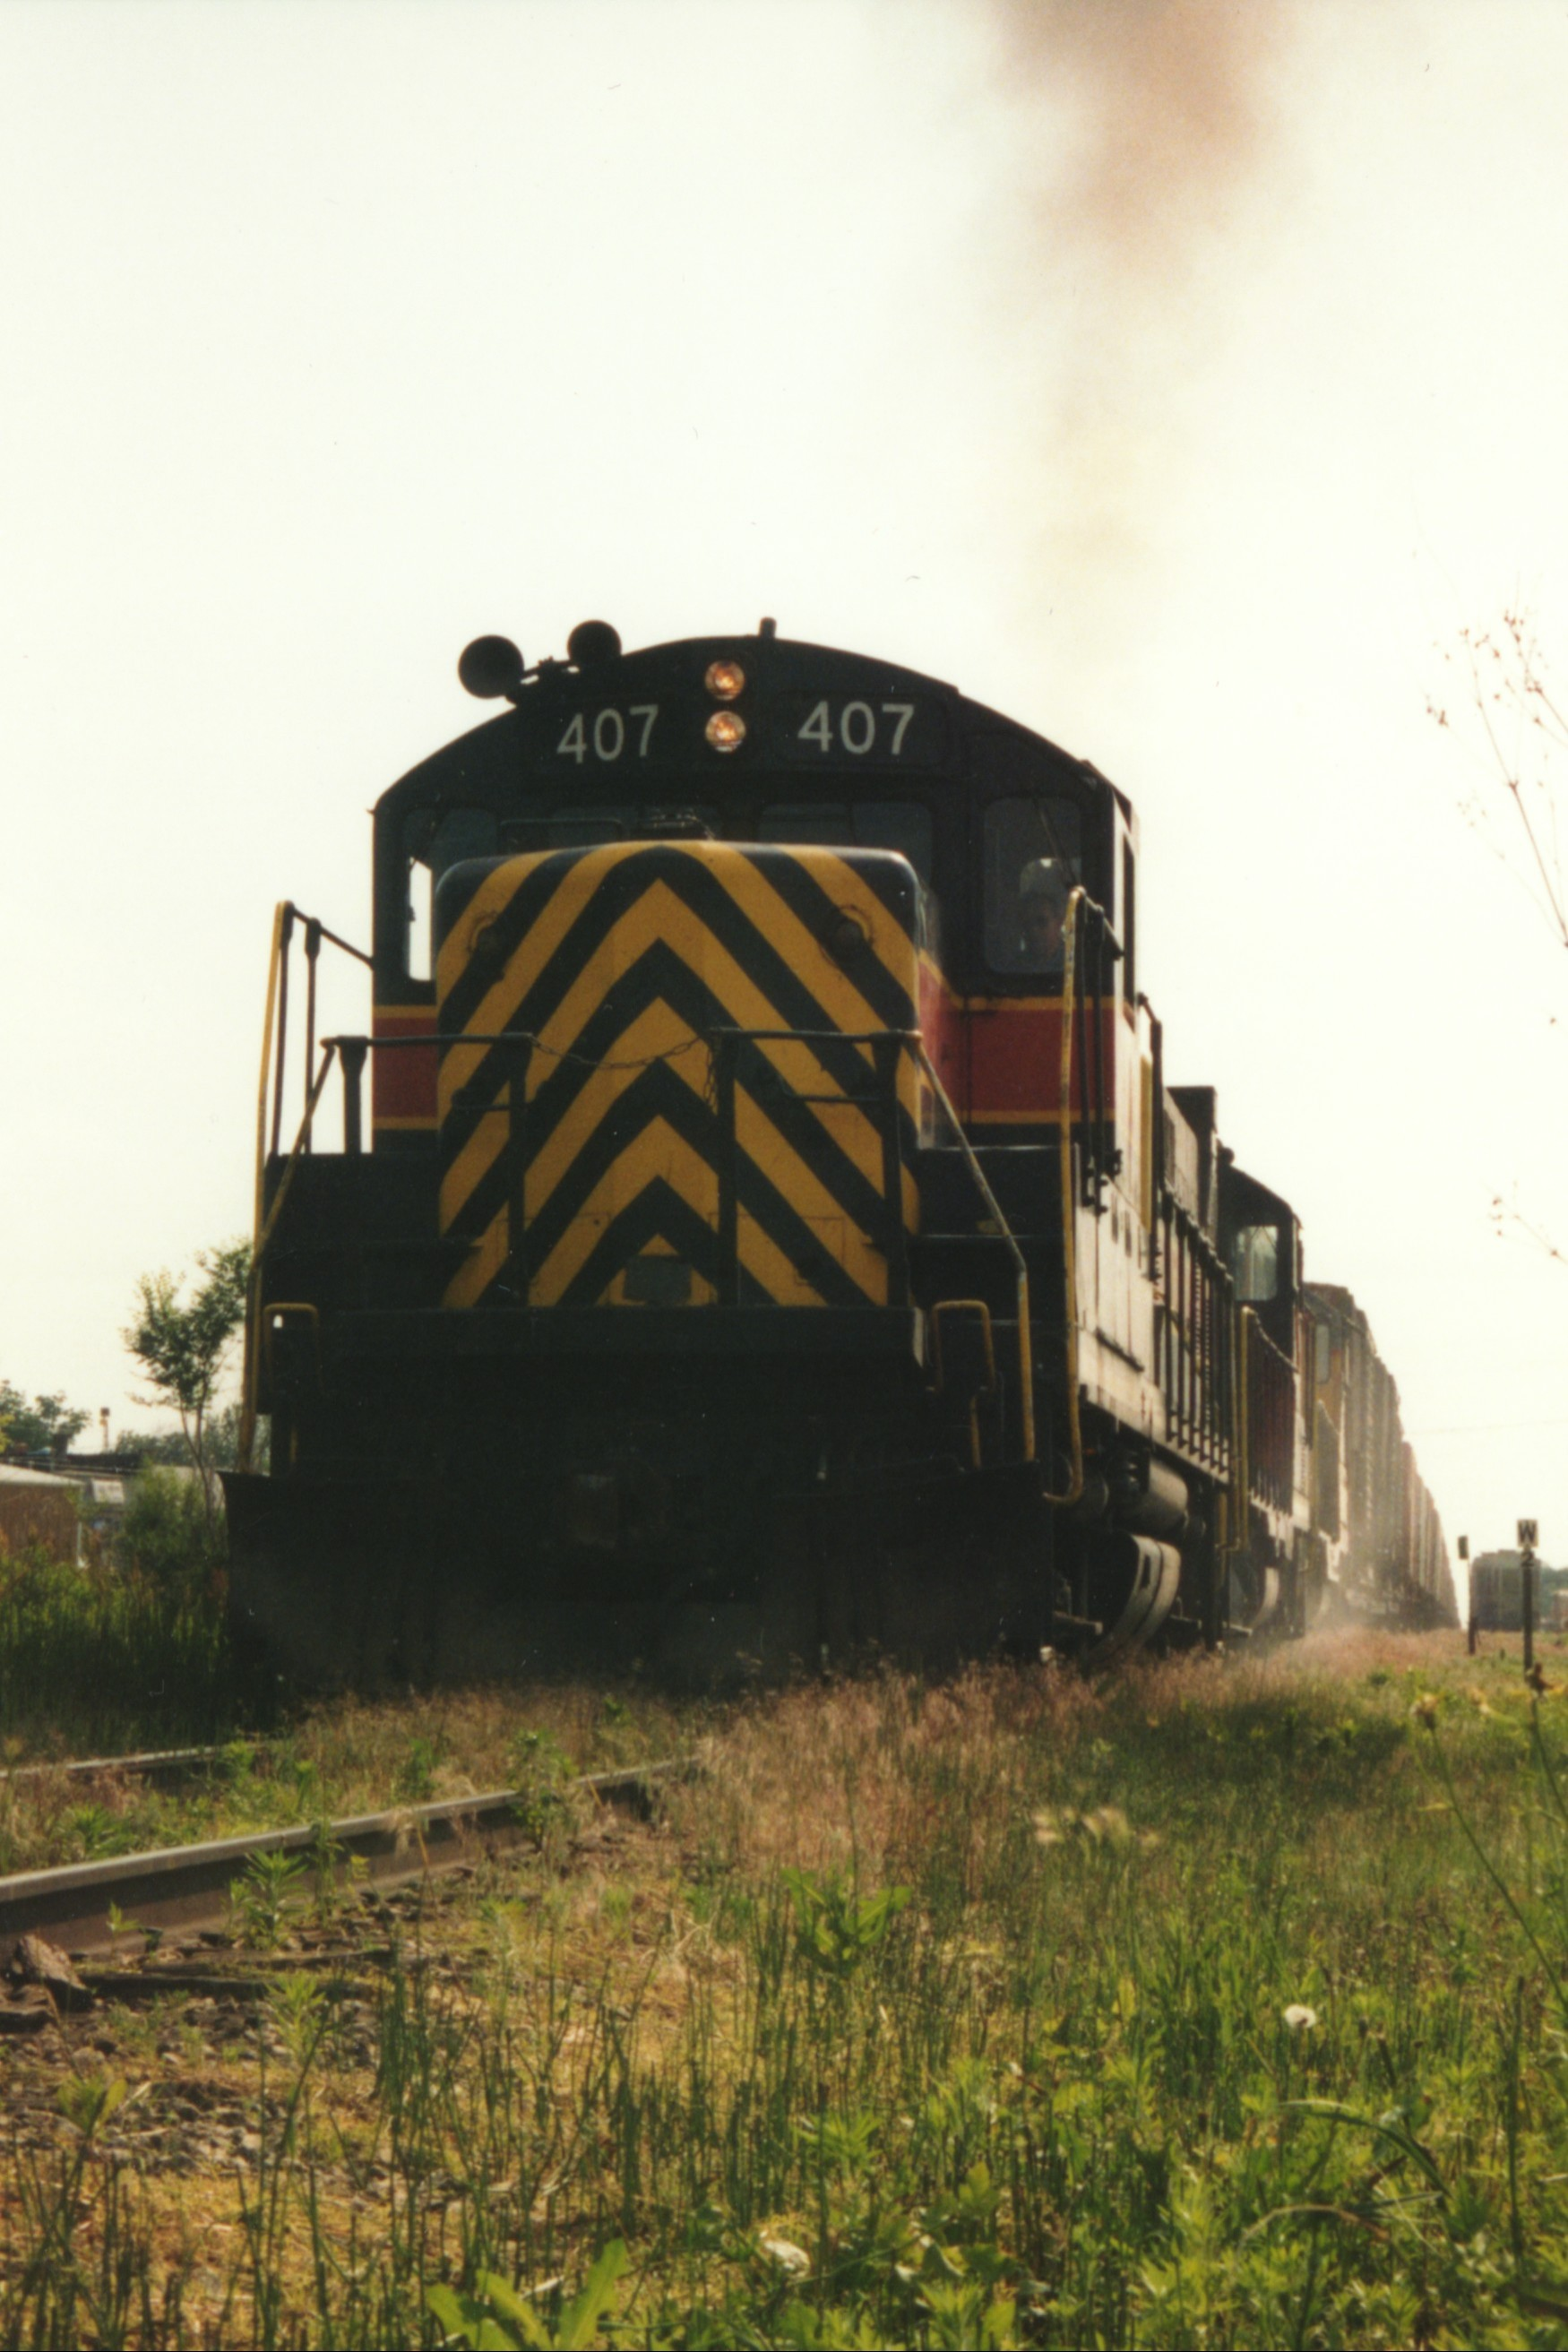 IAIS 407 at Altoona, IA on 06-Jun-1994